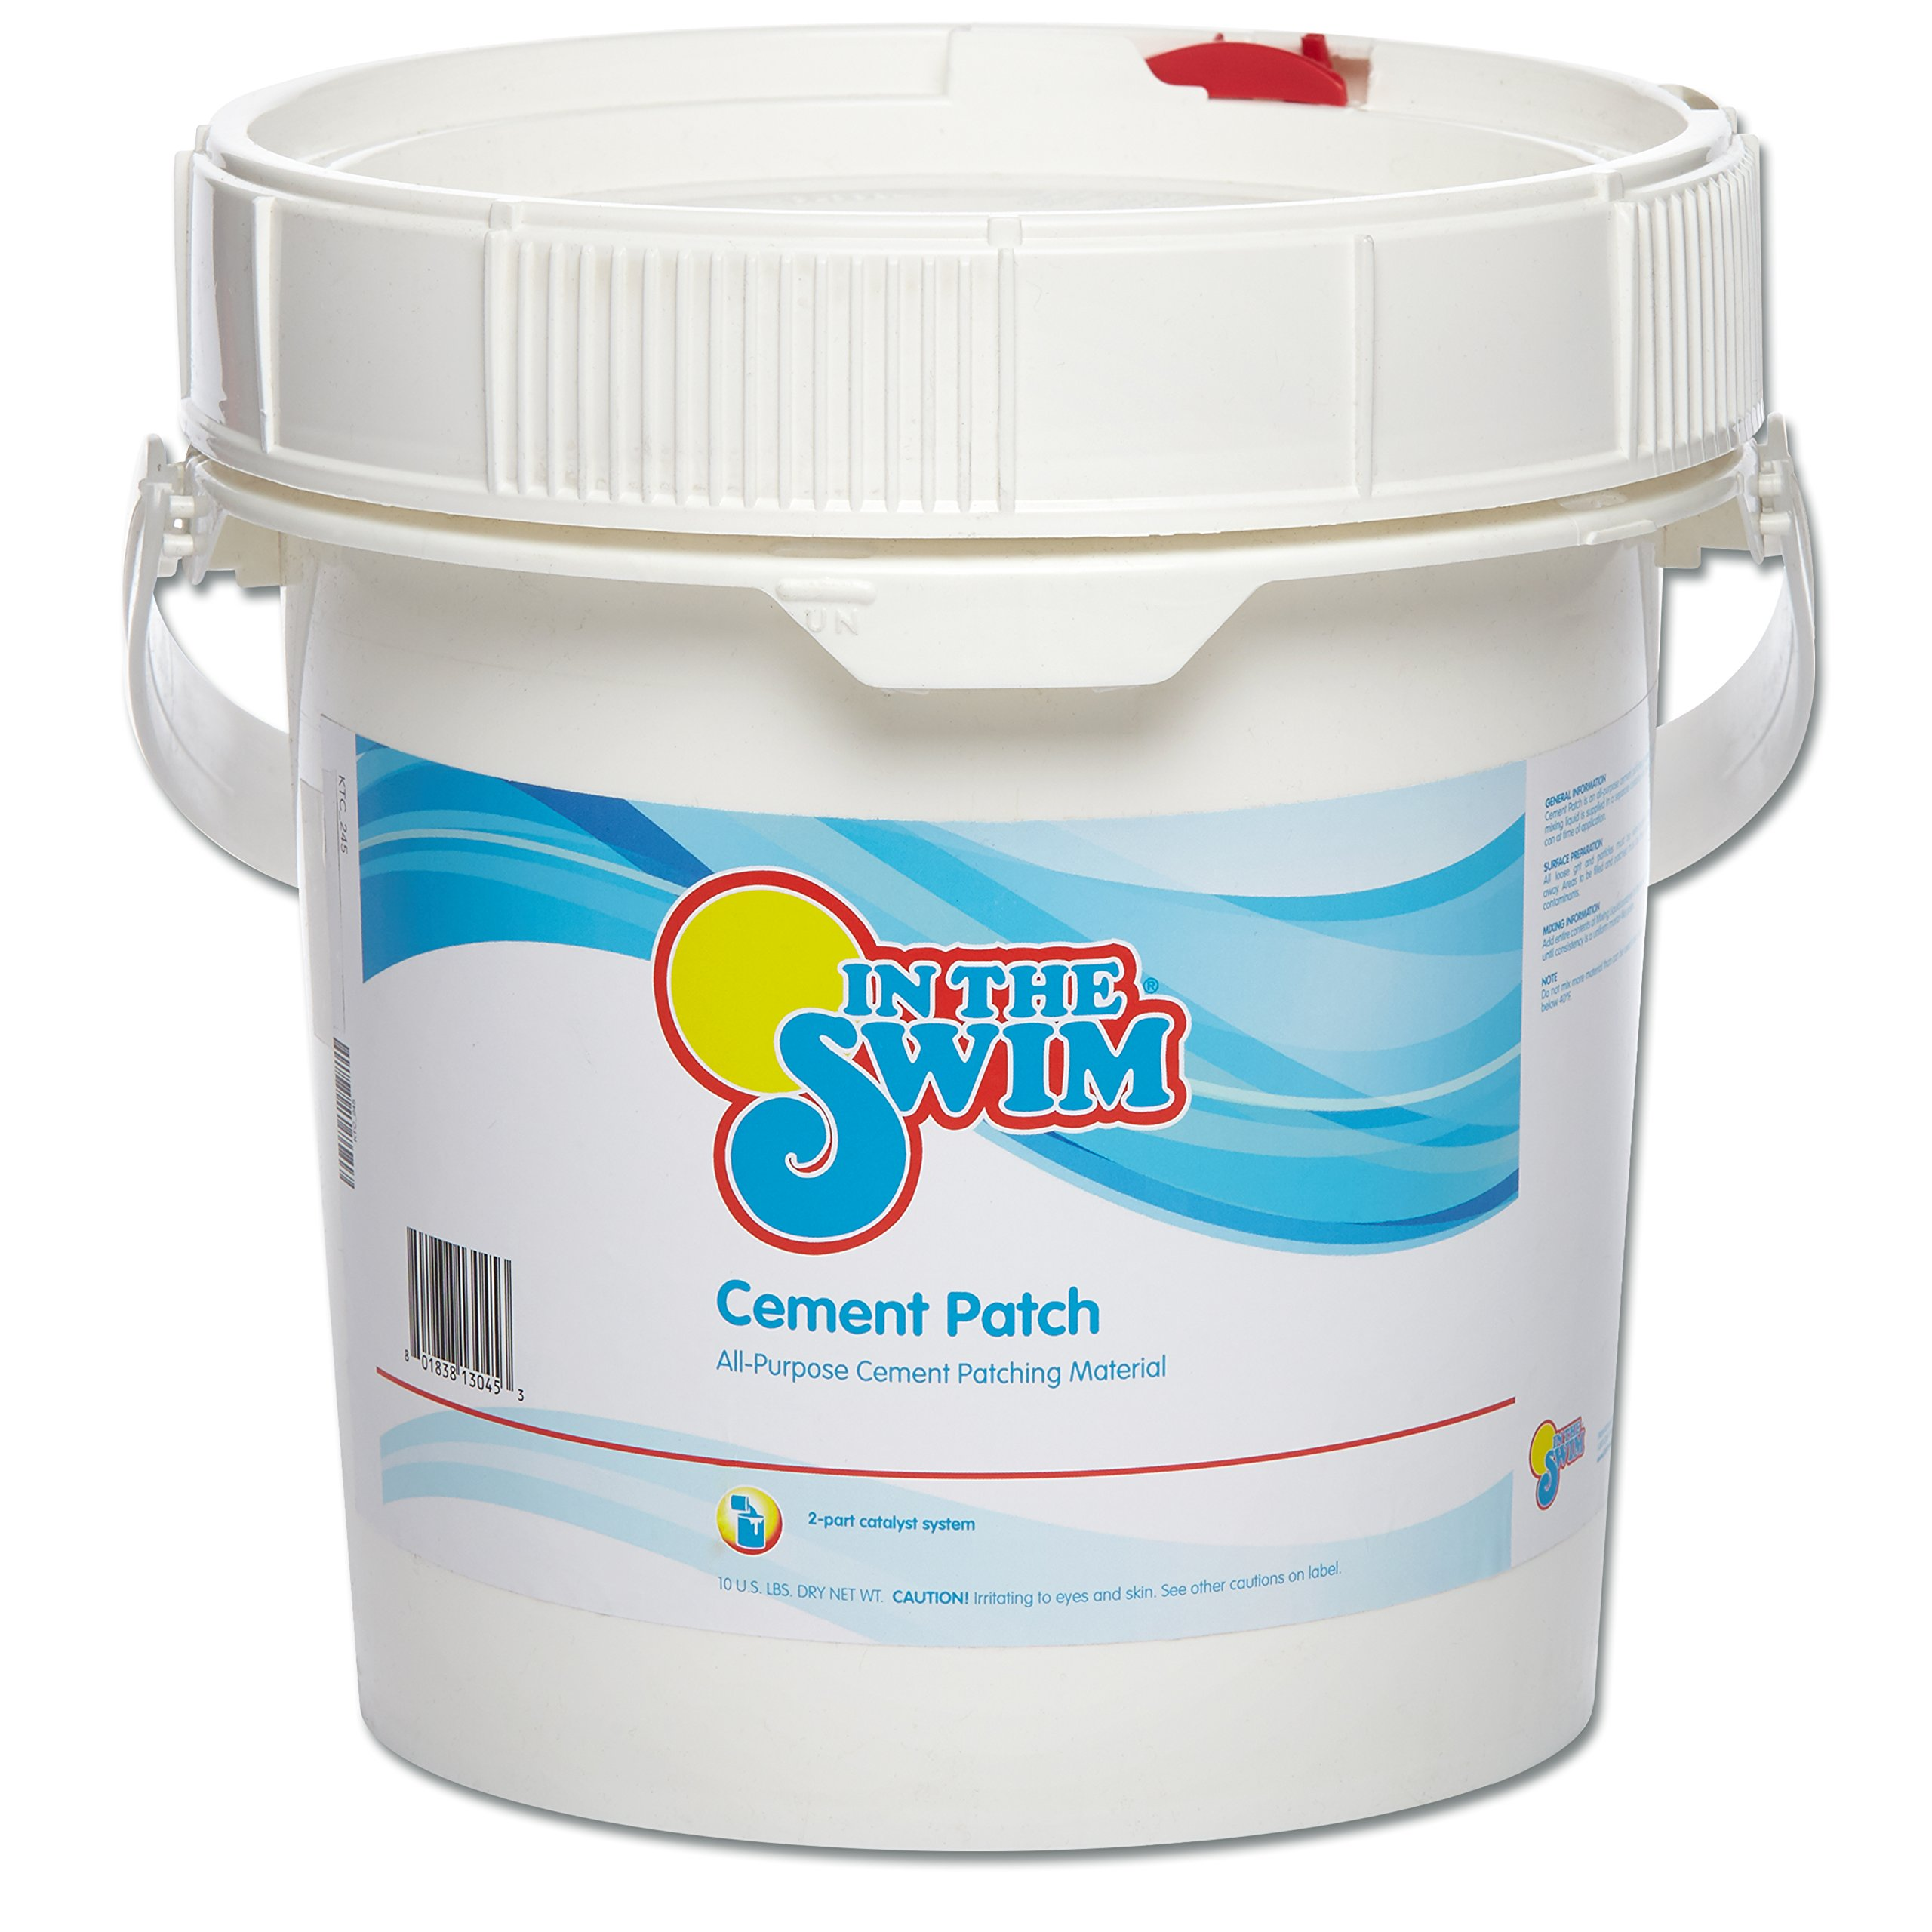 In The Swim Cement Patch Concrete Pool Deck Repair Compound - 1 Gallon by In The Swim